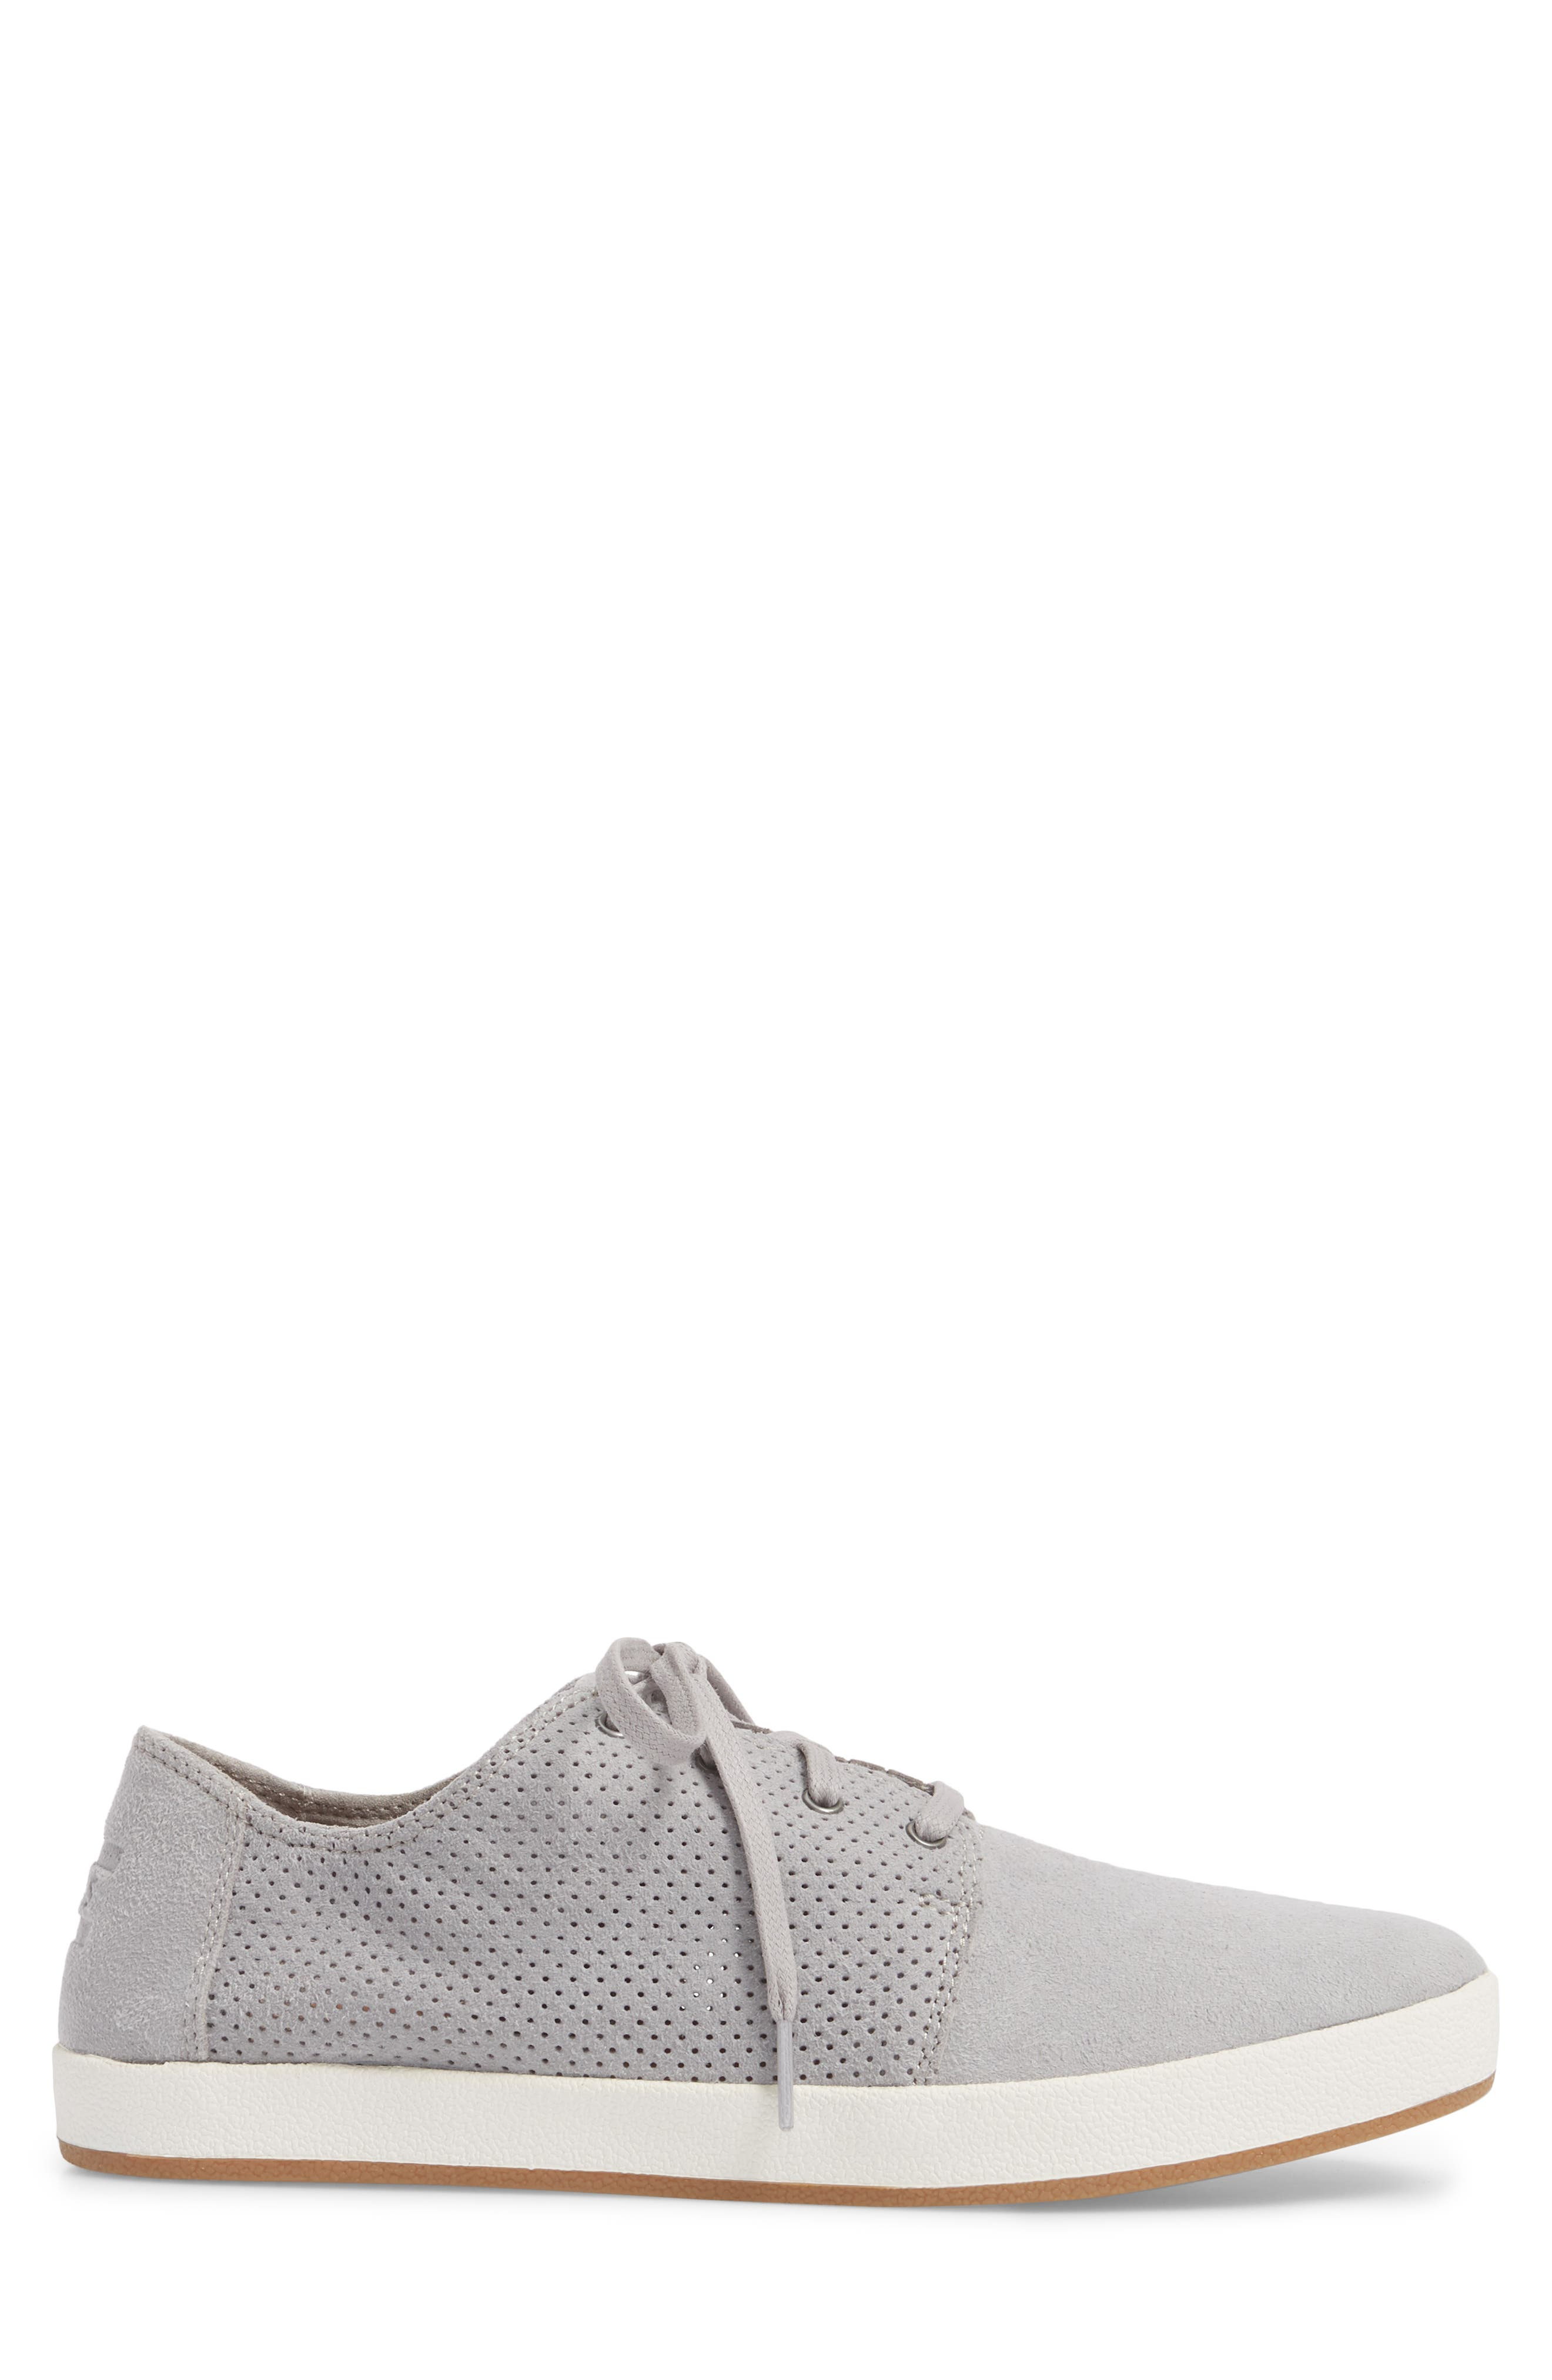 Payton Perforated Sneaker,                             Alternate thumbnail 3, color,                             DRIZZLE GREY PERFORATED